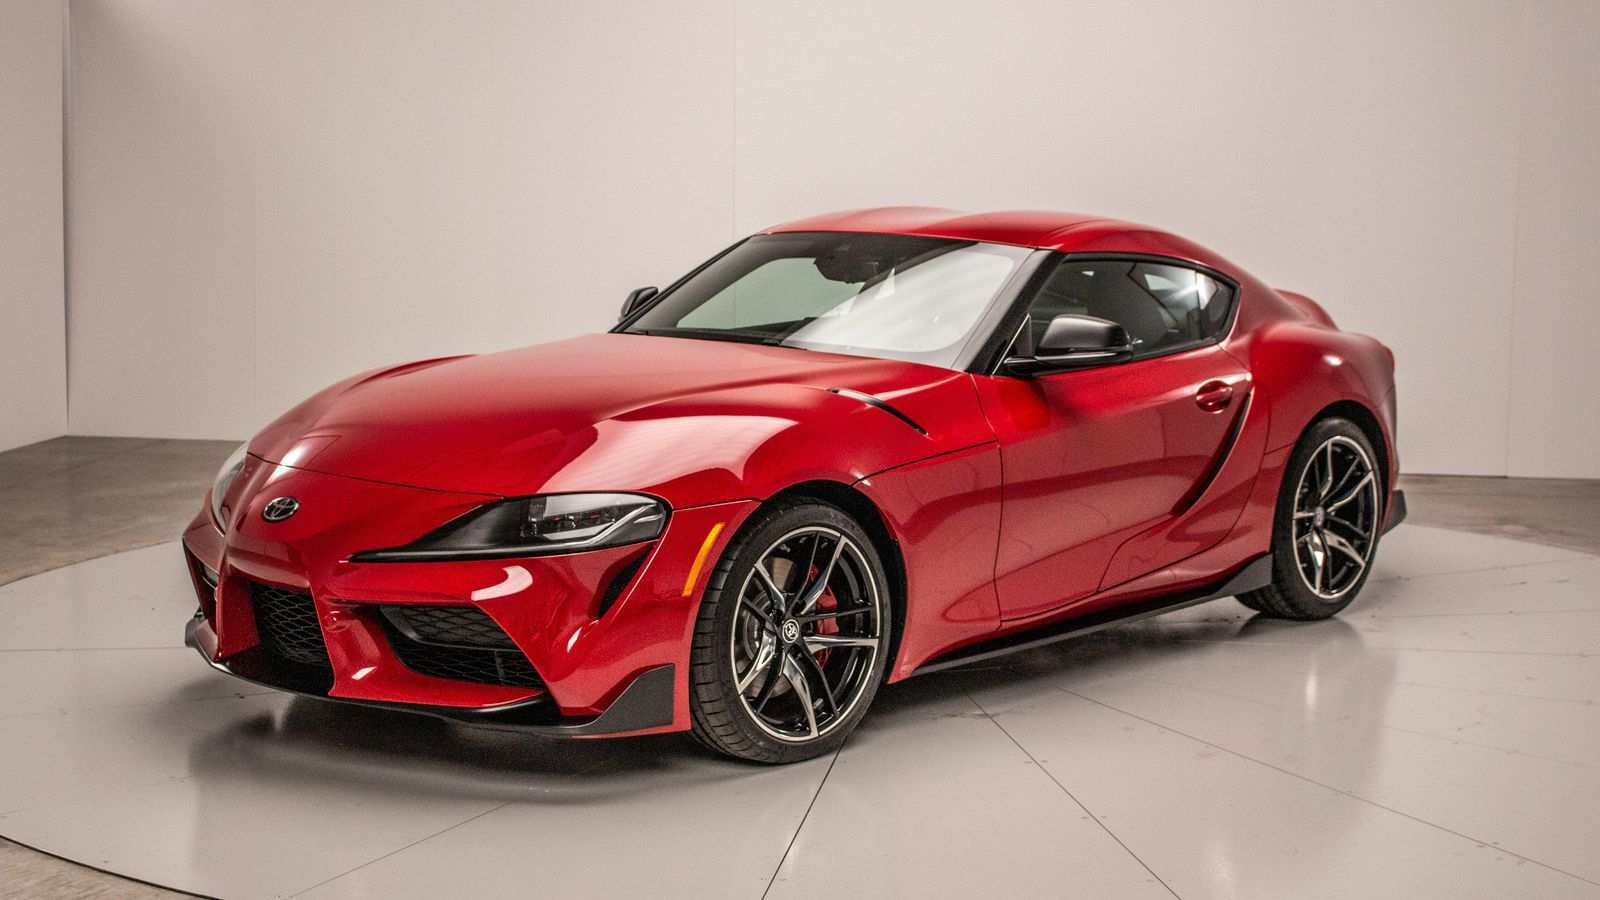 64 A 2020 Toyota Supra Price And Review